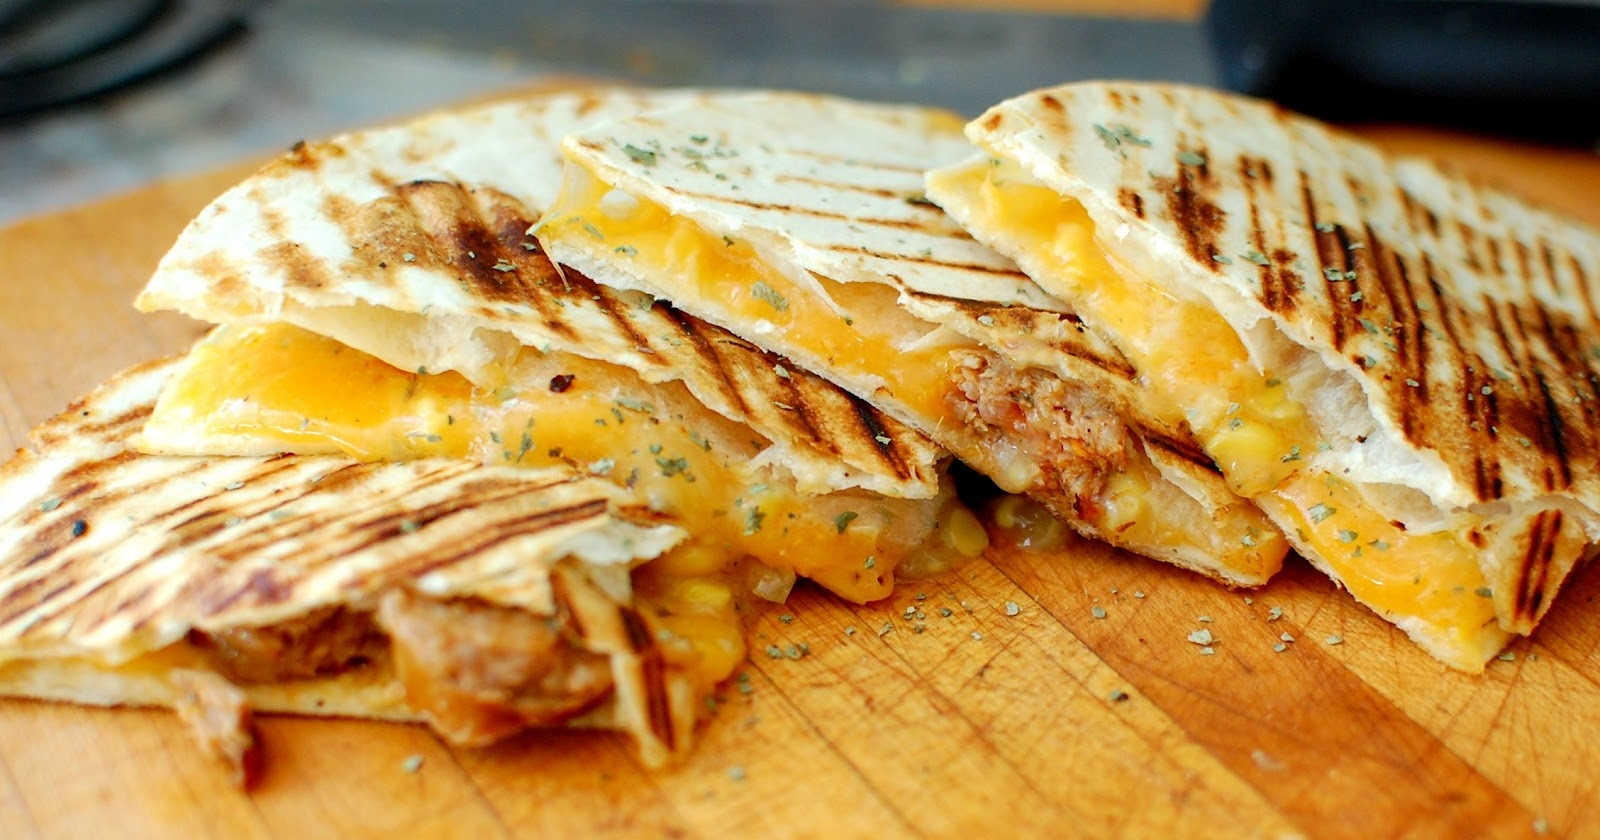 Killer Quesadilla